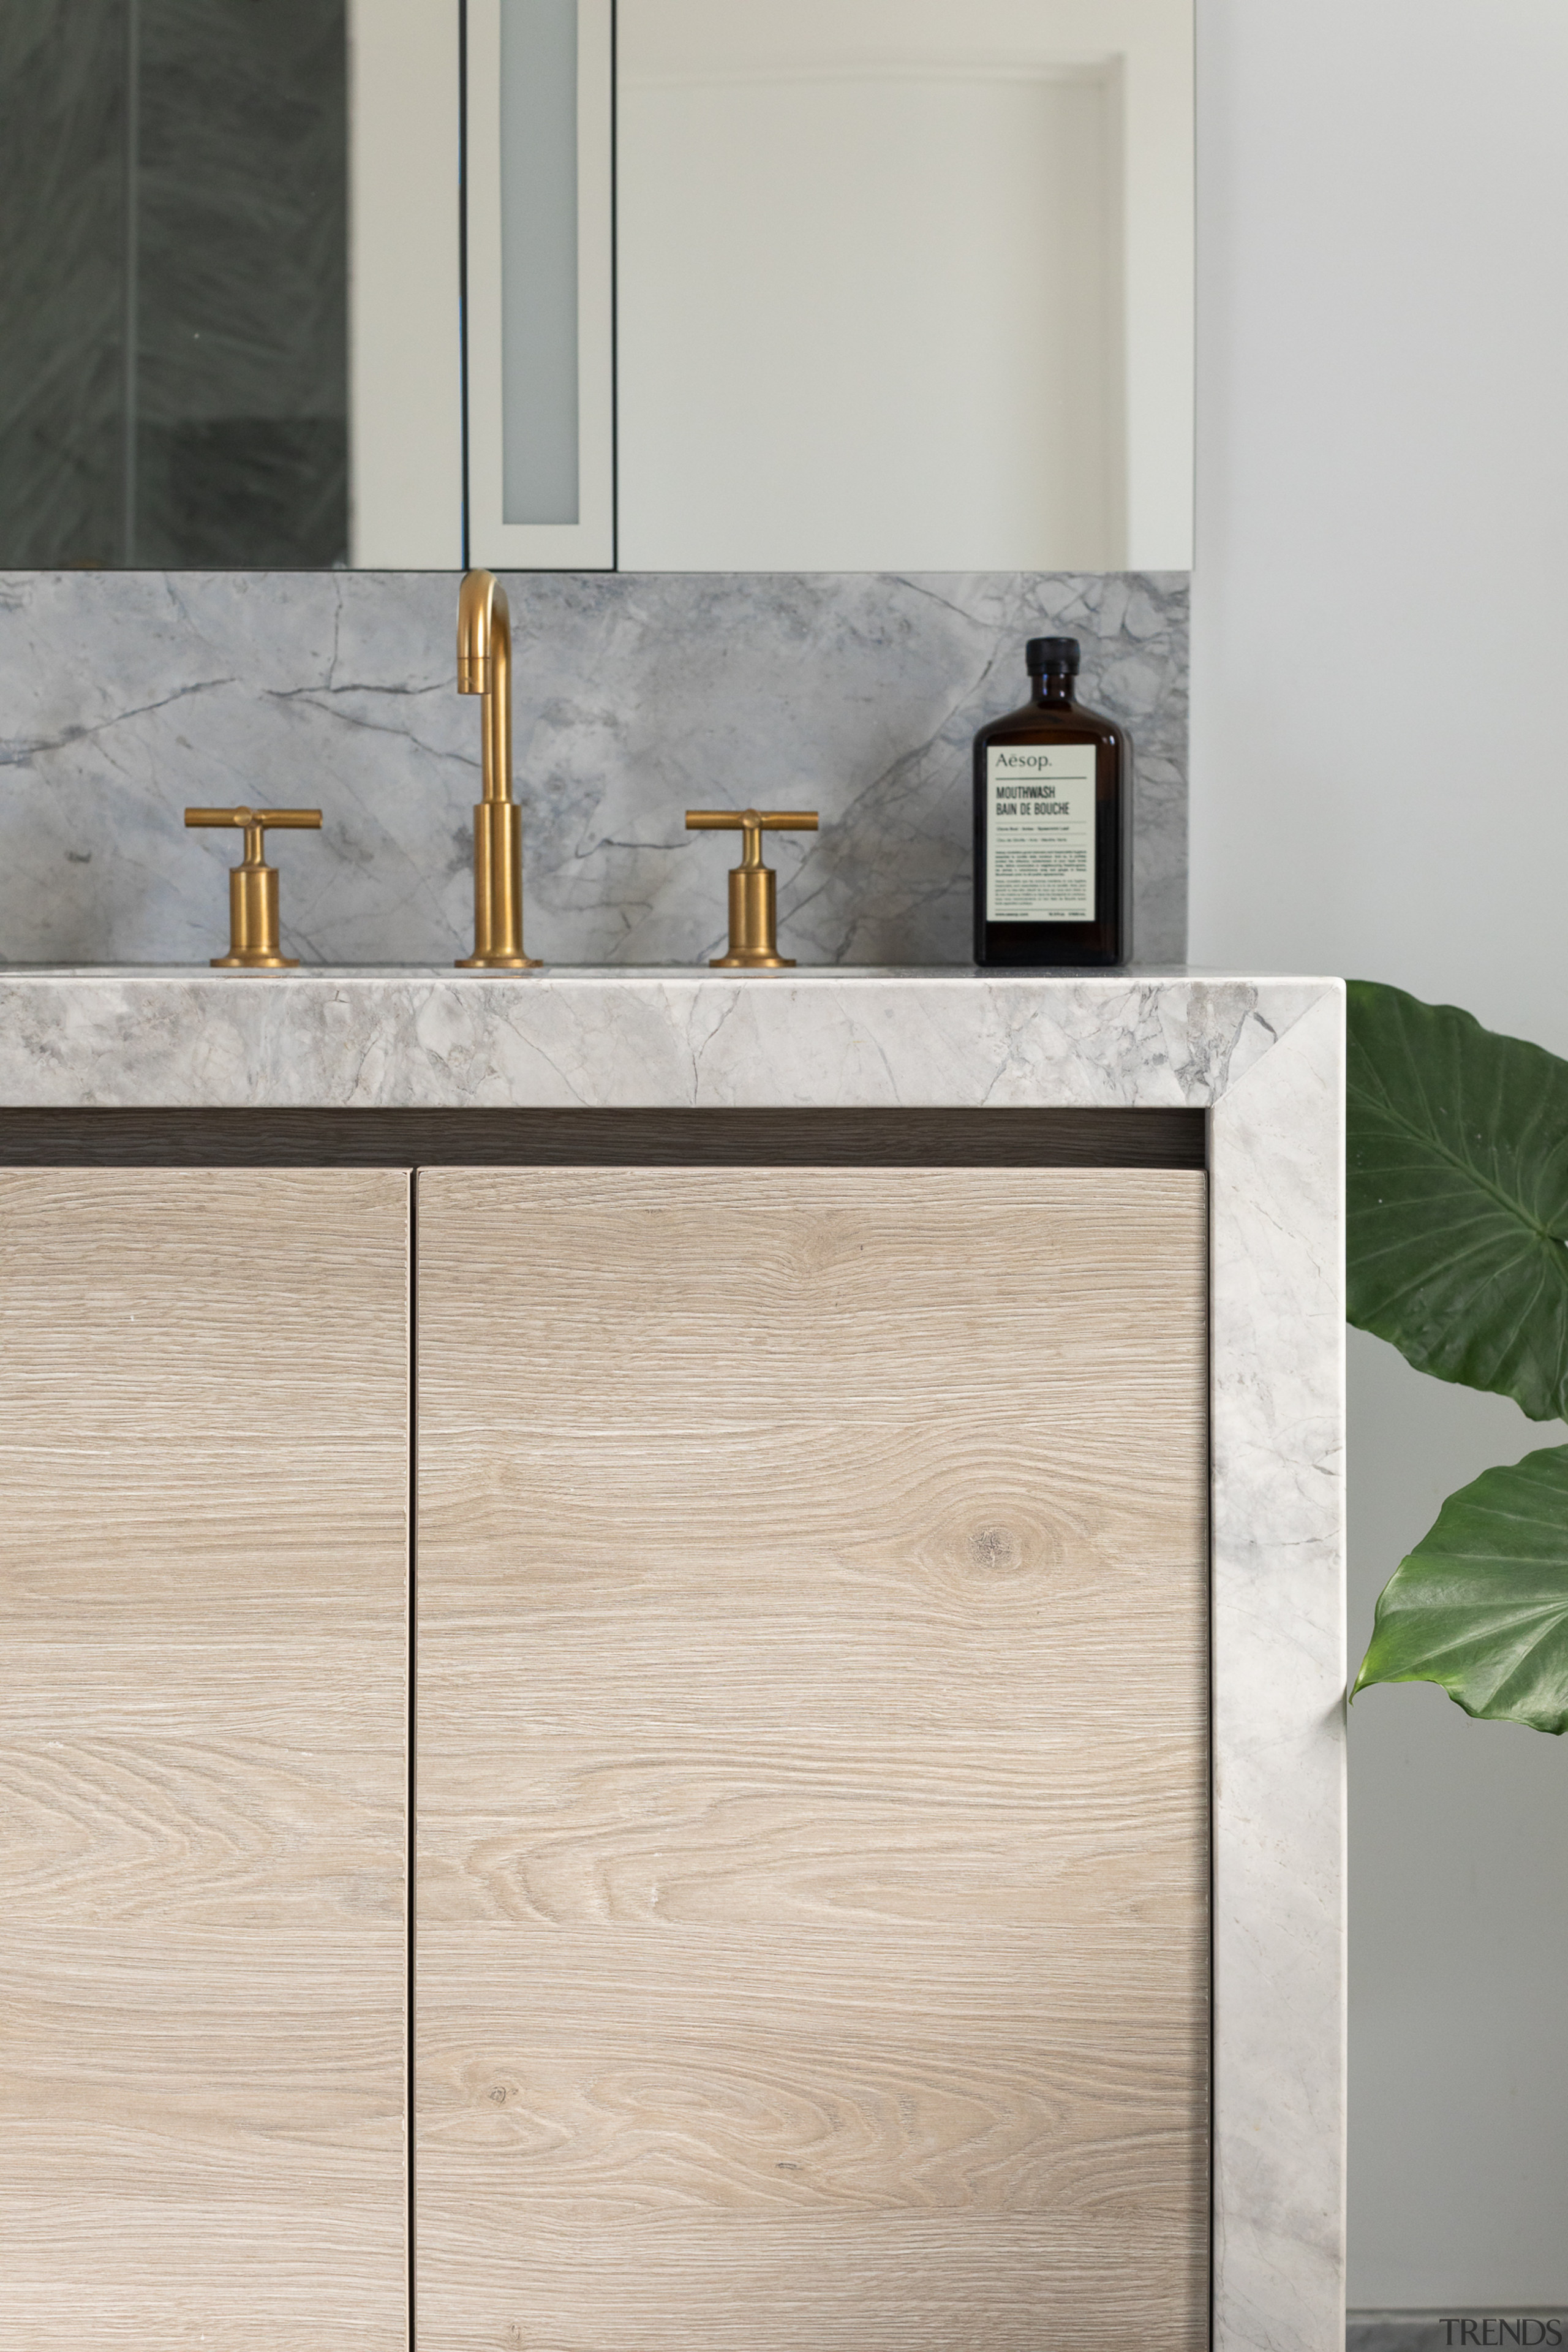 Natural materials in the bathroom are punctuated by